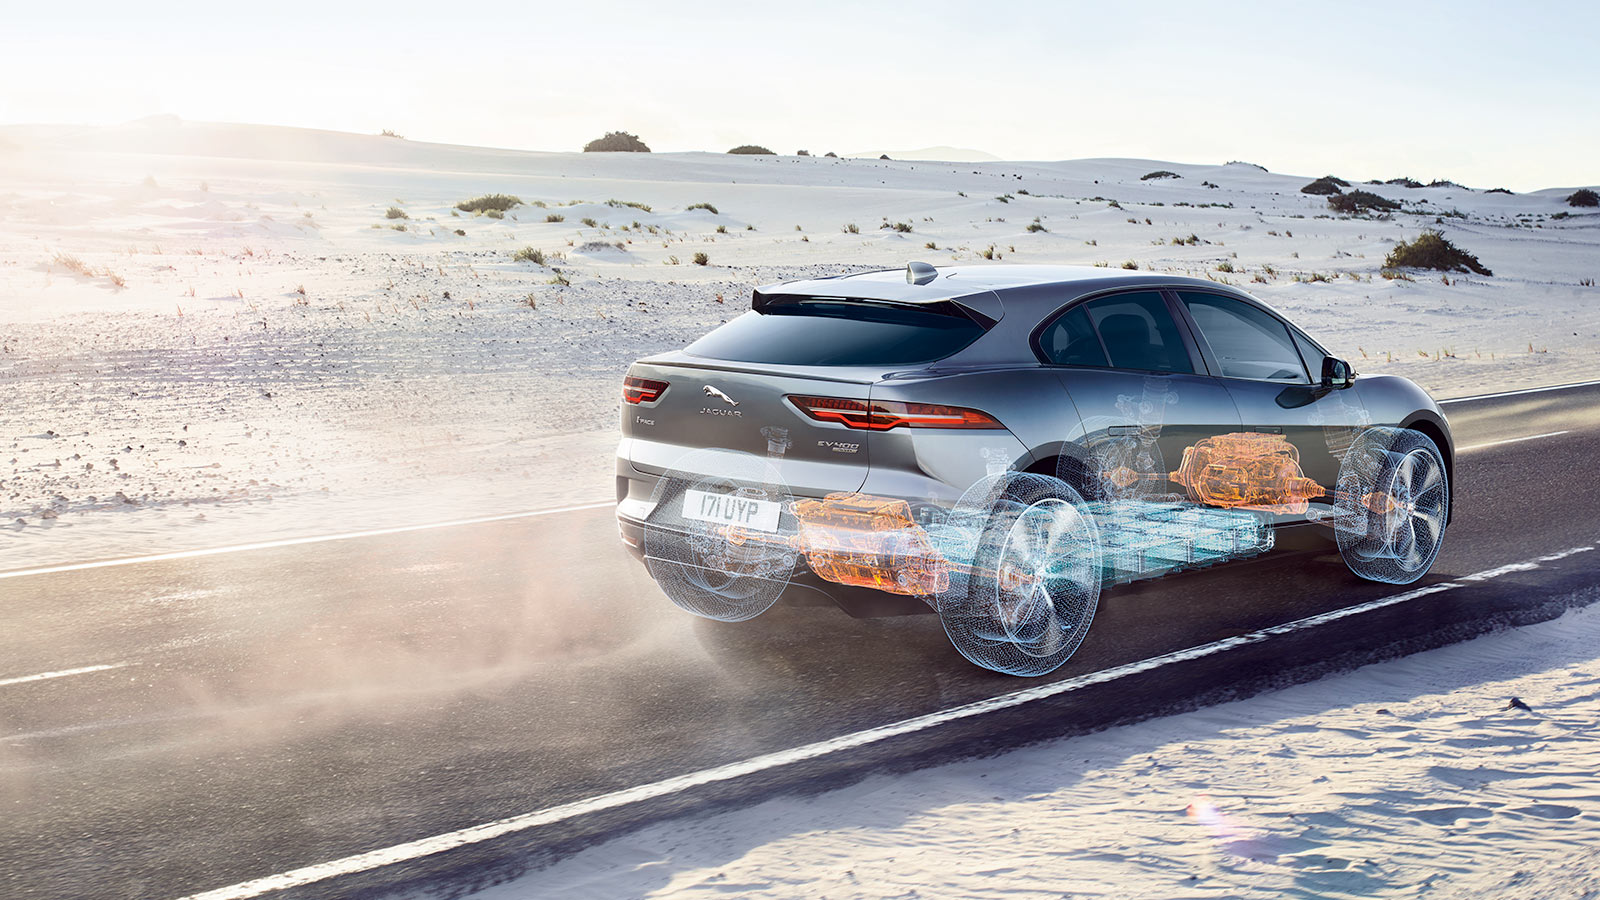 Xray of Jaguar I-Pace Driving on a dusty road.